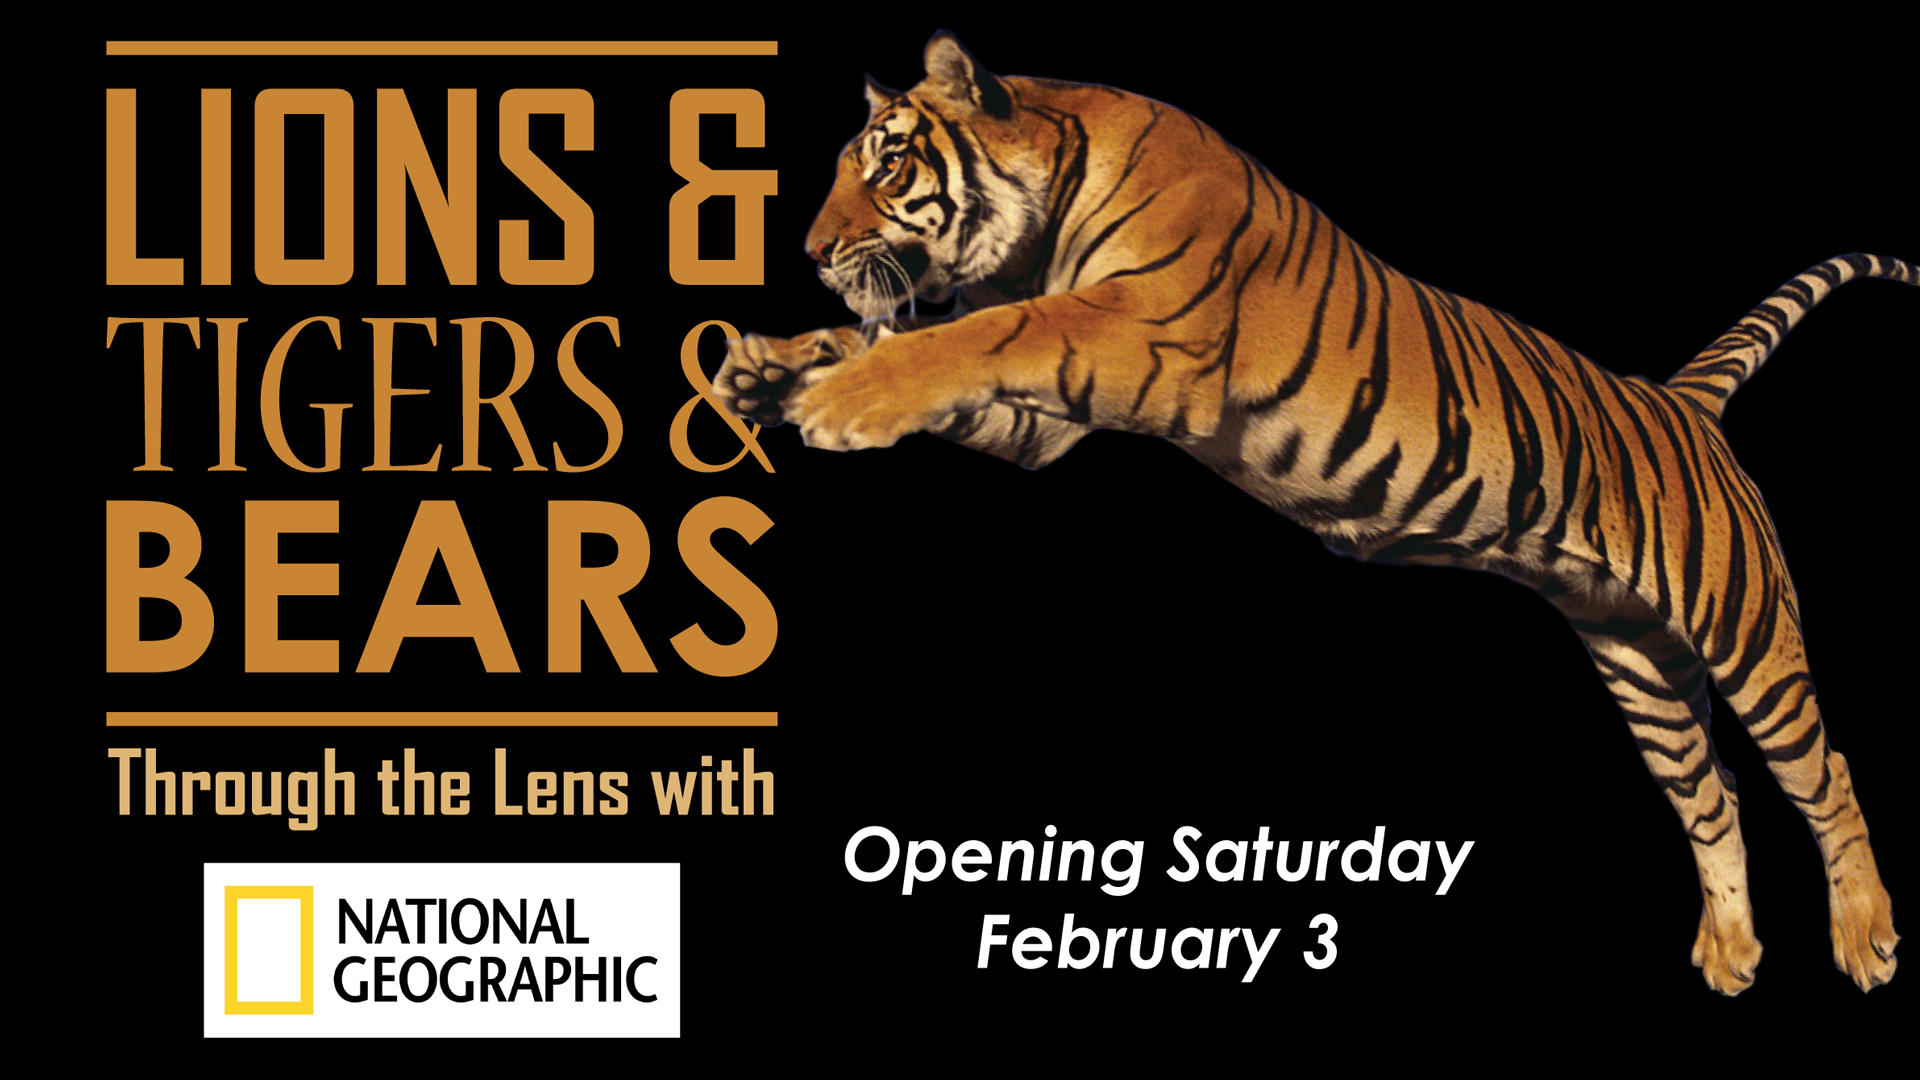 Lions, Tigers, & Bears: Through the Lens of National Geographic